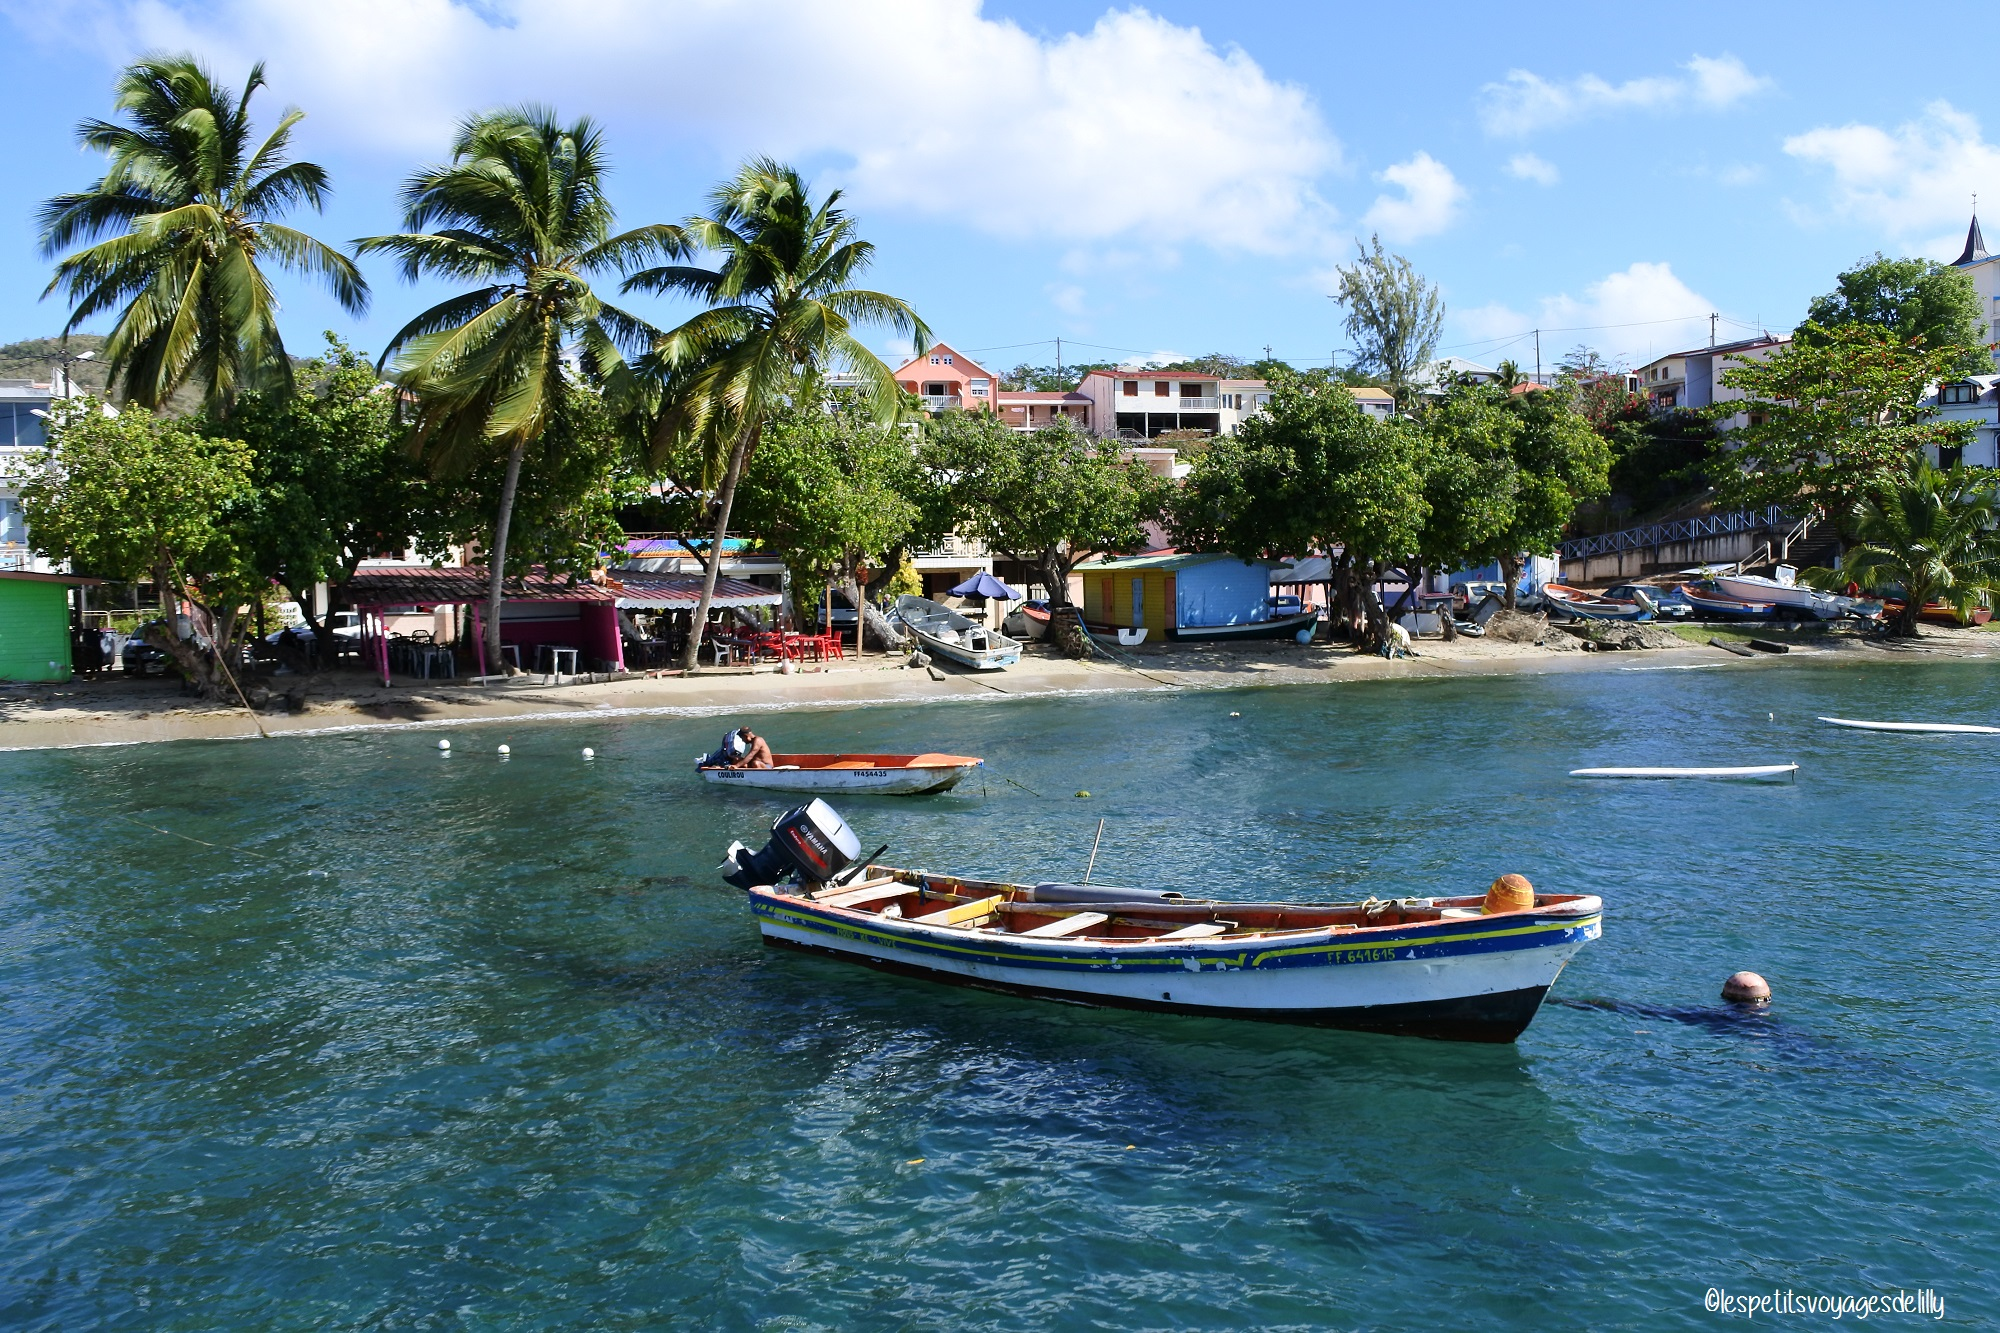 Martinique_Sainte Luce6©lespetitsvoyagesdelilly